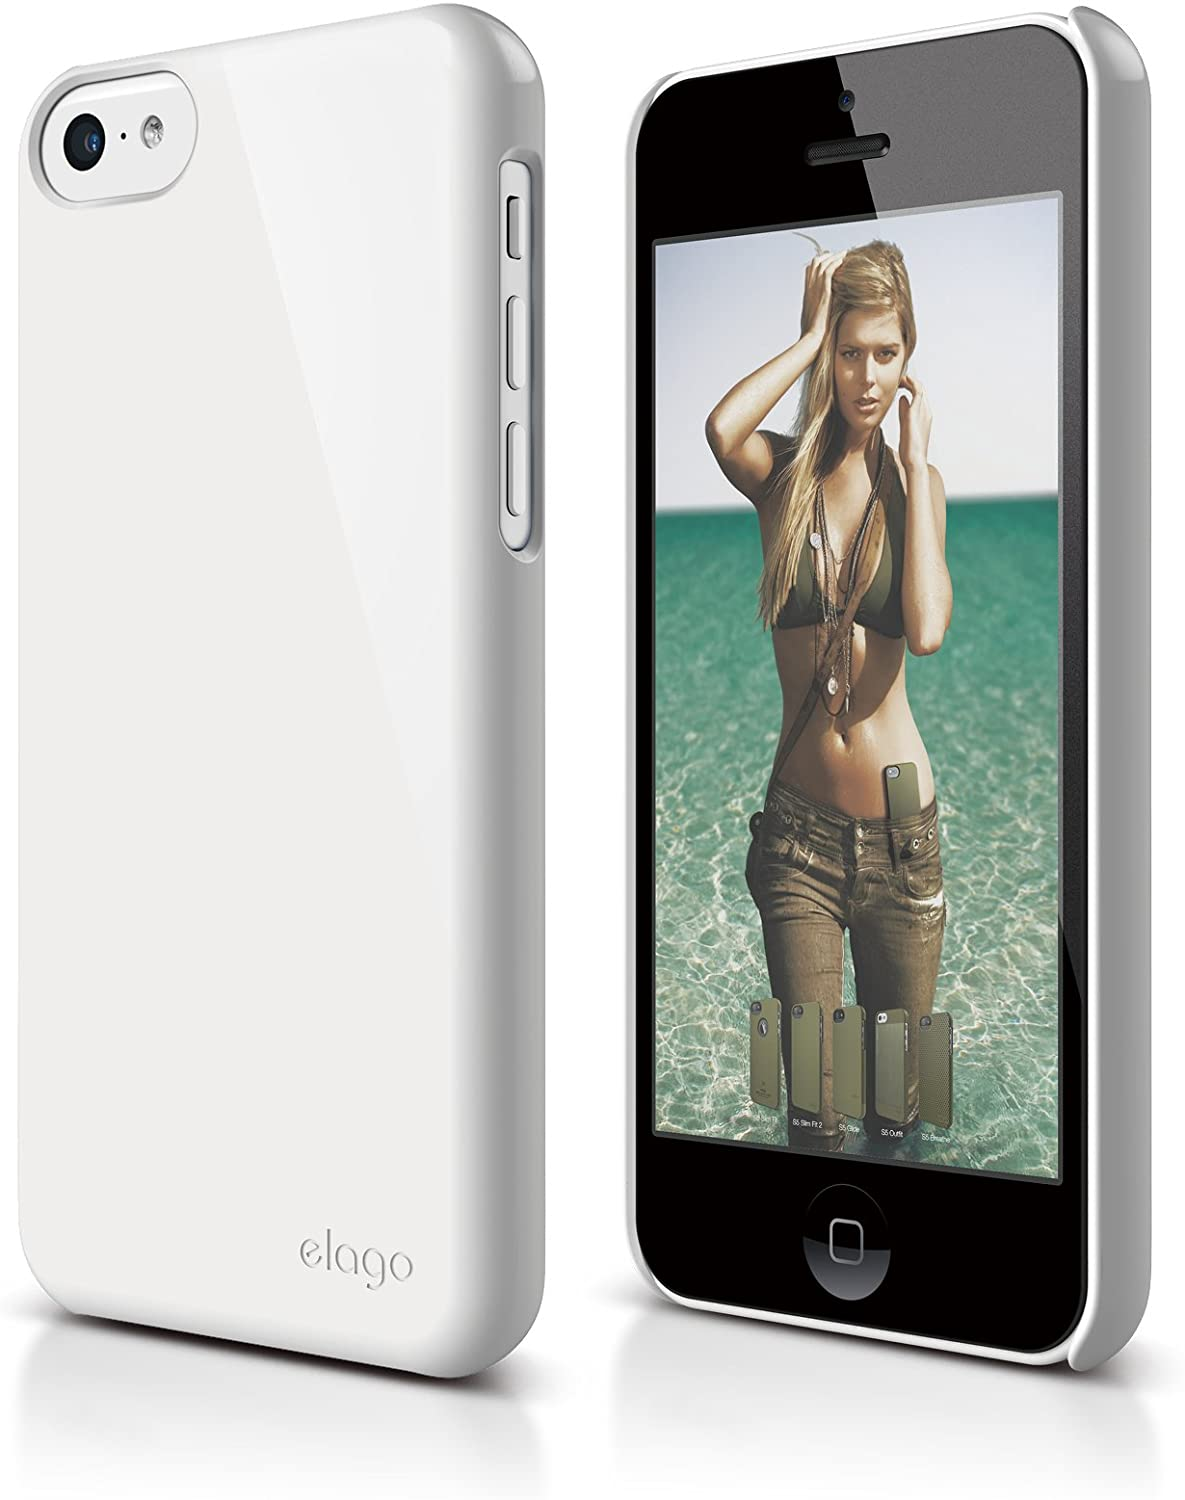 elago S5C Slim Fit 2 Case for iPhone 5C - eco Friendly Retail Packaging (White)